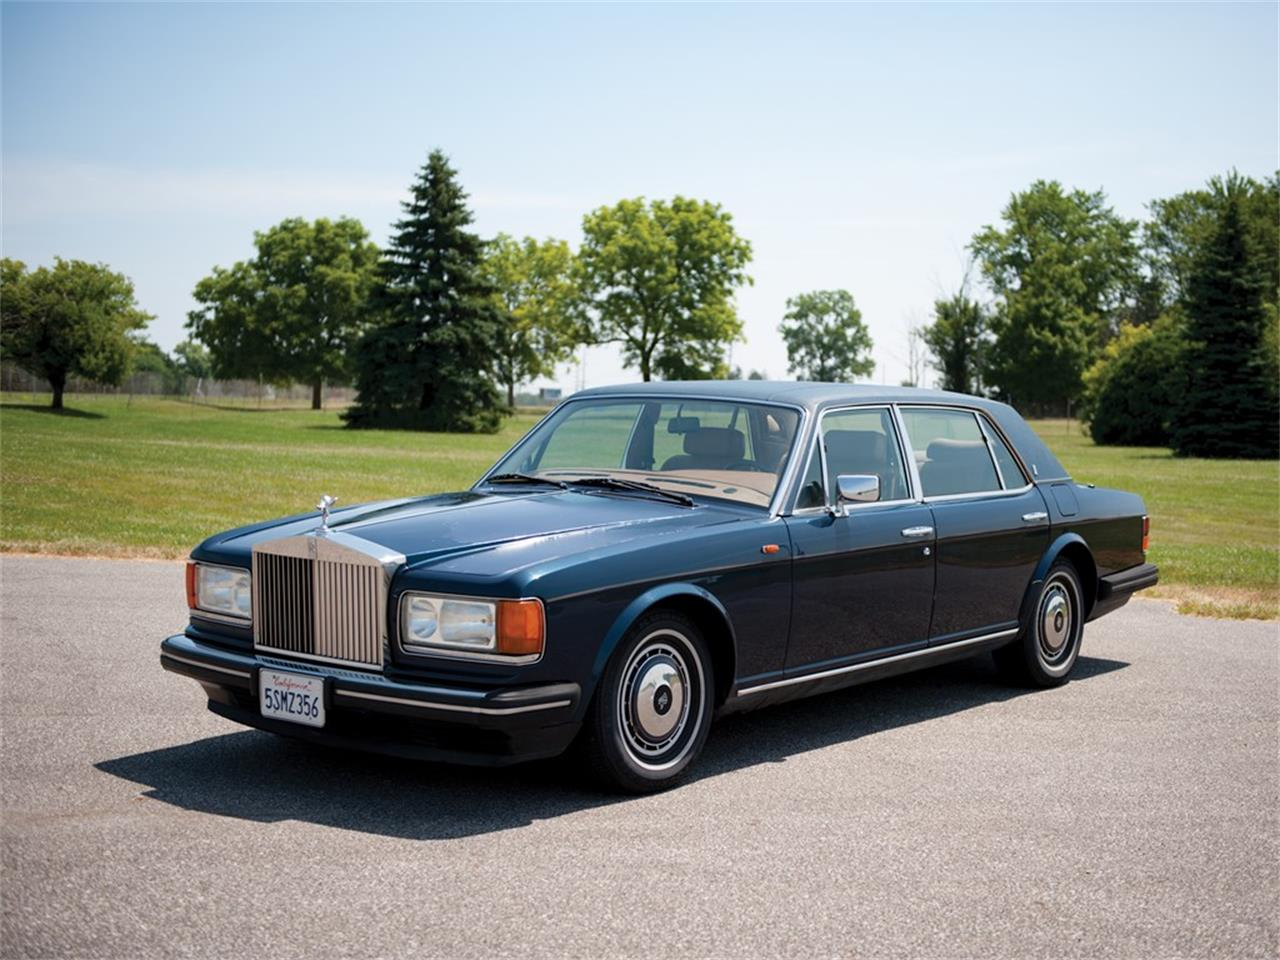 Classic Rolls-Royce for Sale on ClassicCars.com